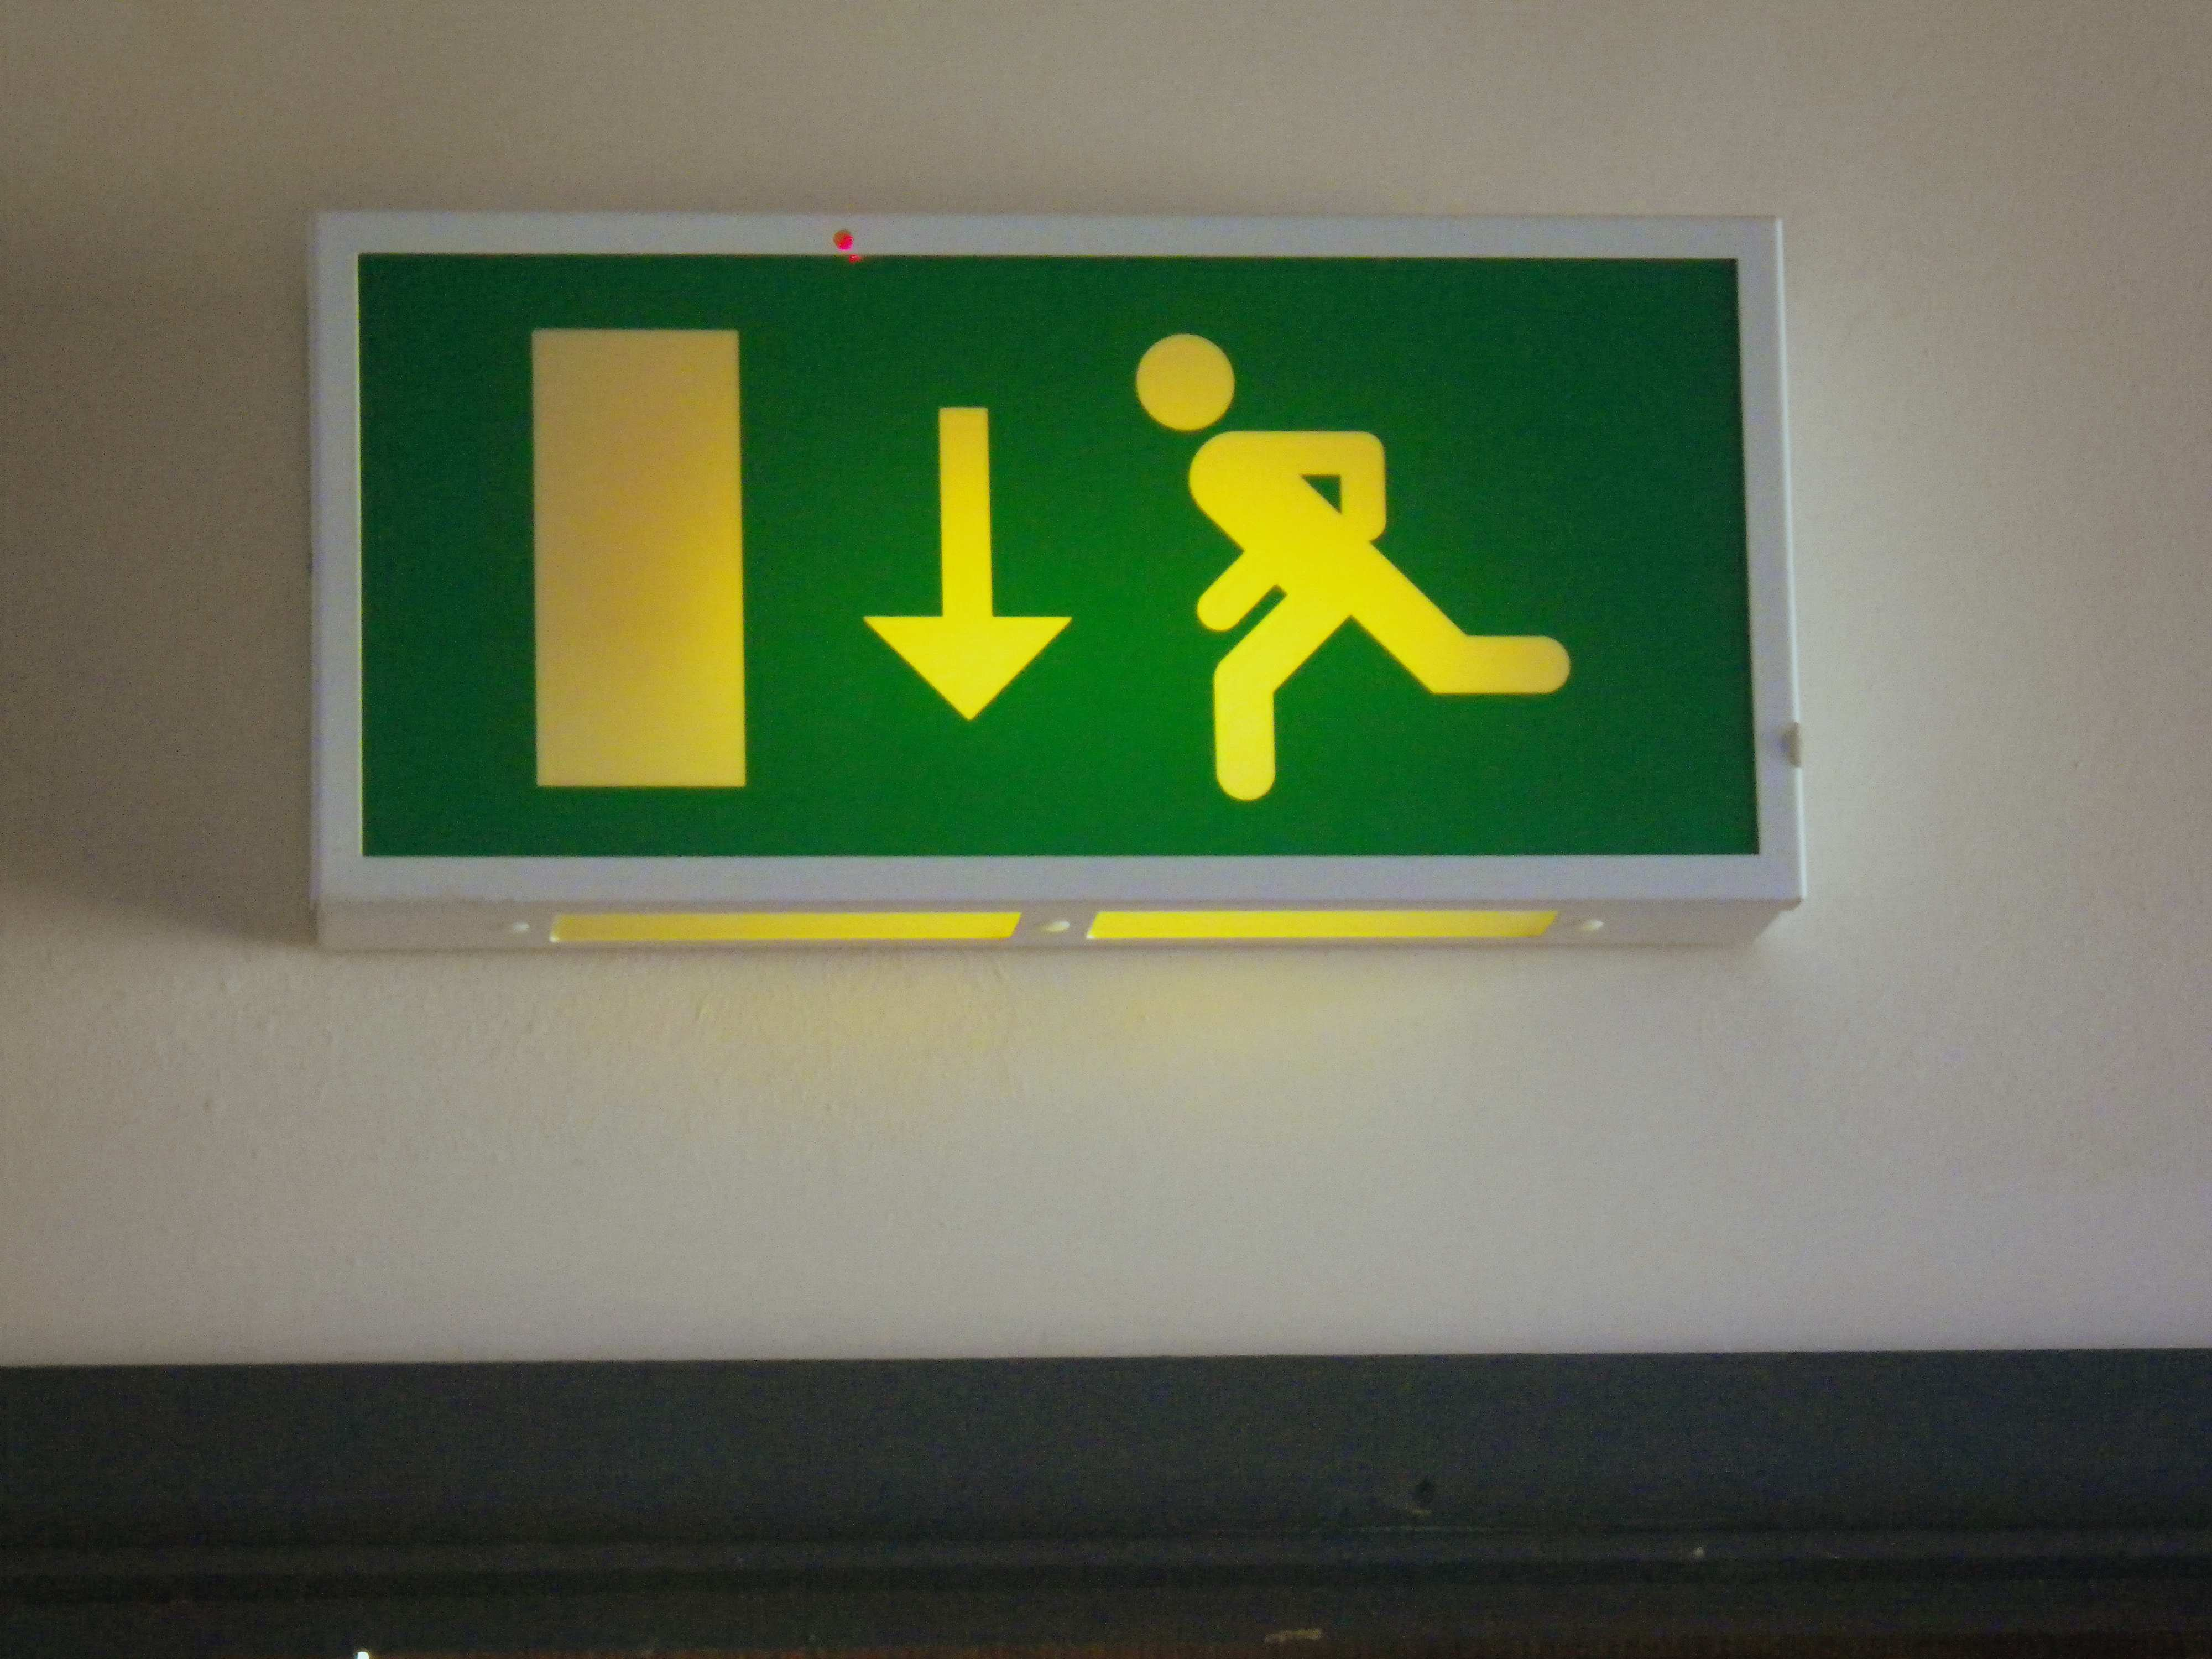 This way out of Roebuck House